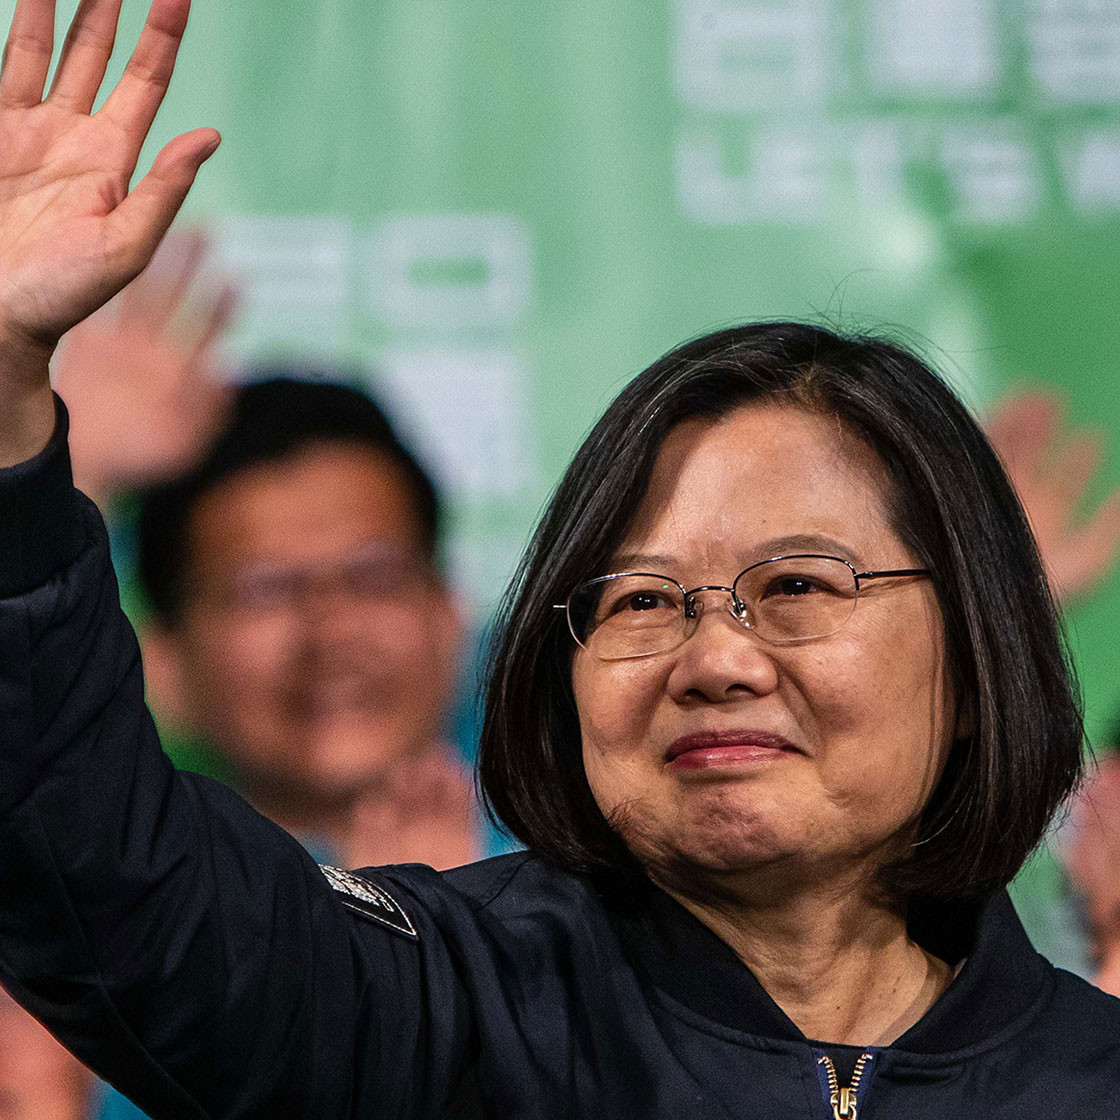 Taiwan's voters back Tsai's tough stance on China